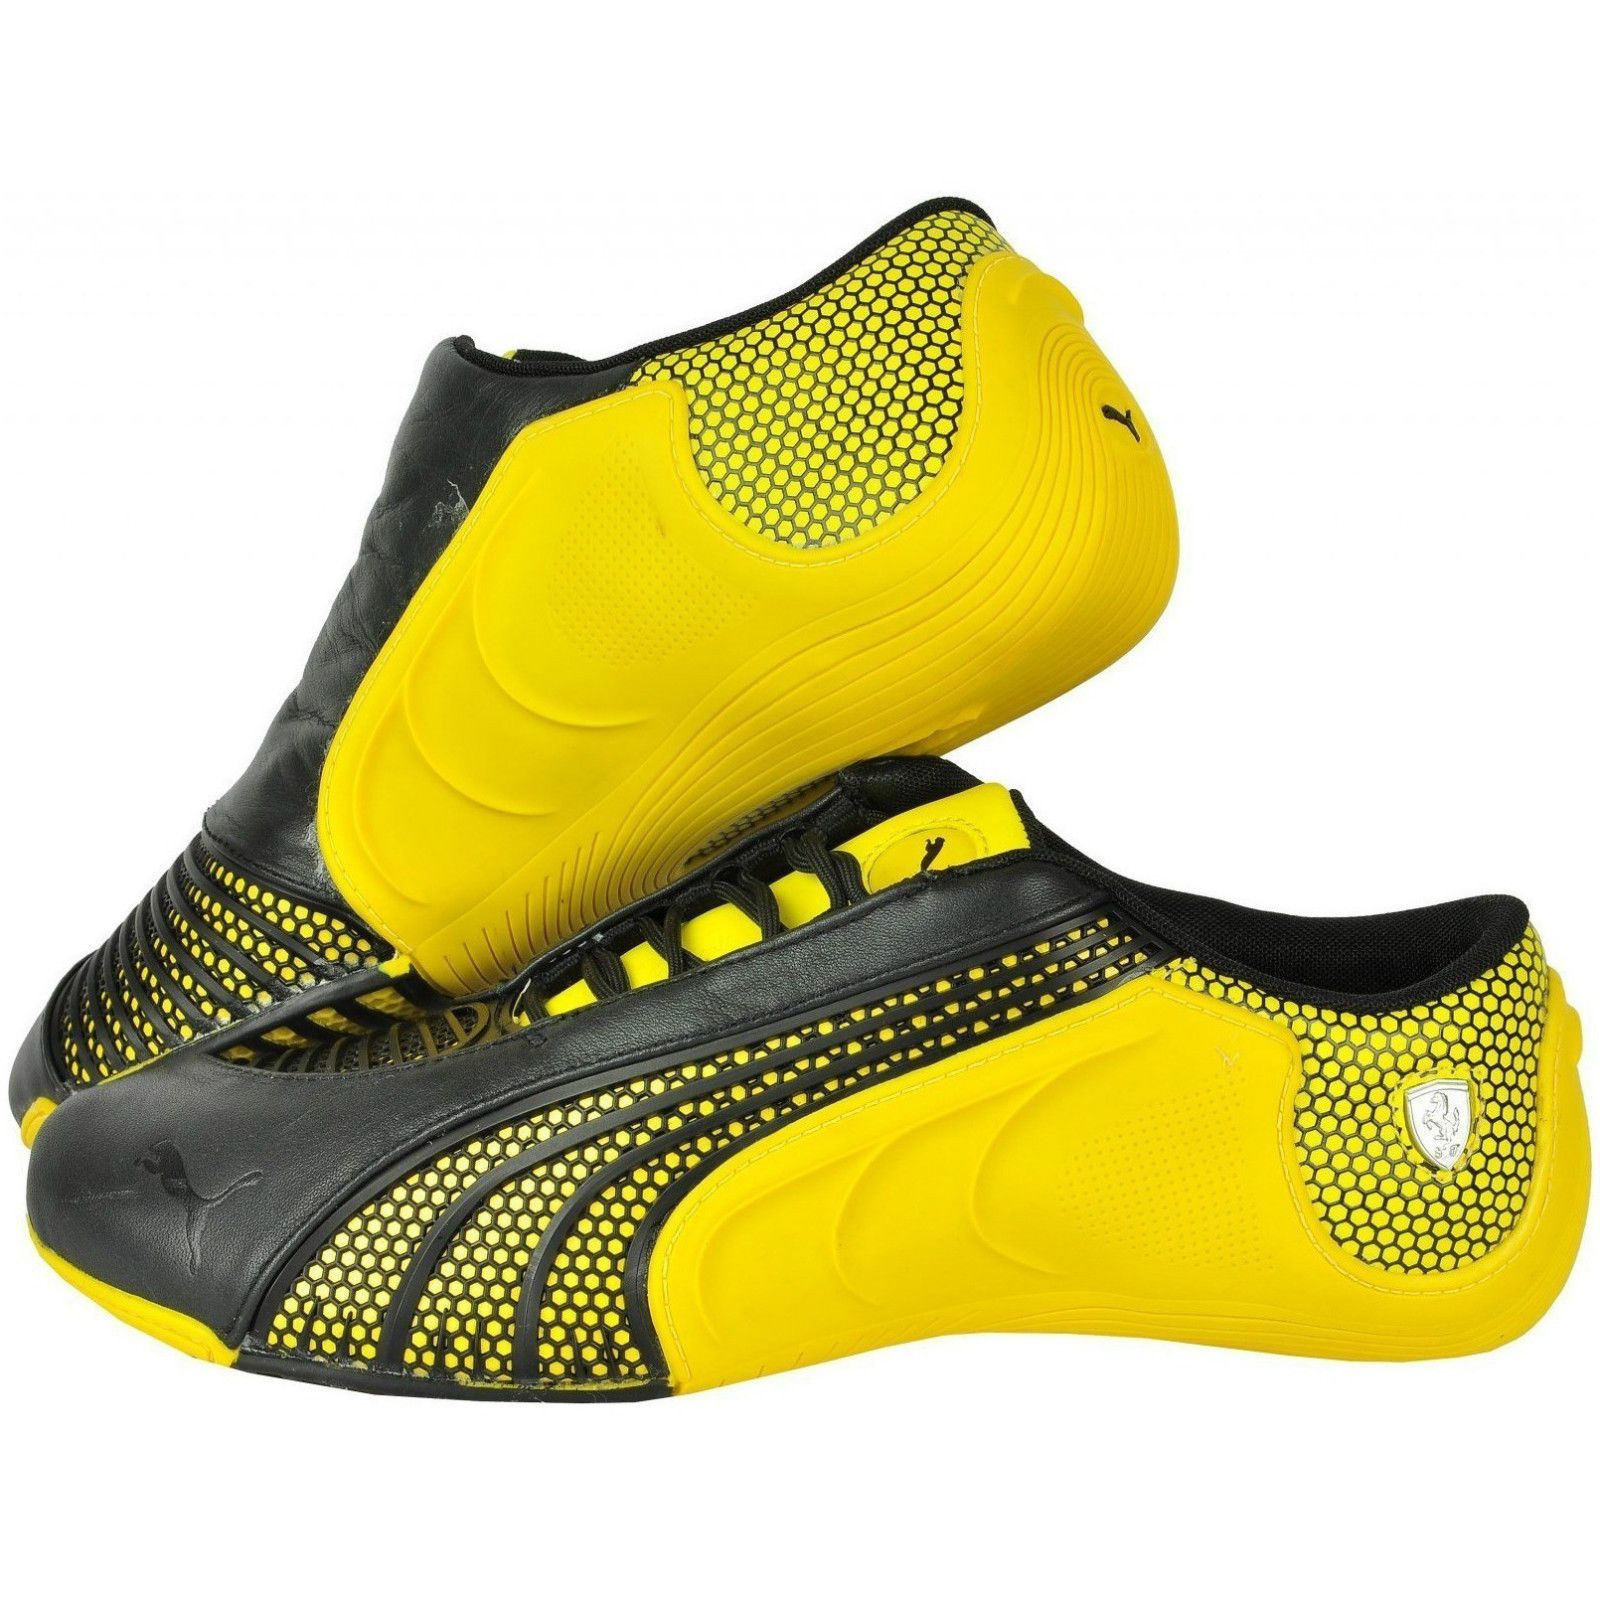 NEW Puma Ferrari Siluro Yellow Shoes SF 302840 02 Men s  998f443e1